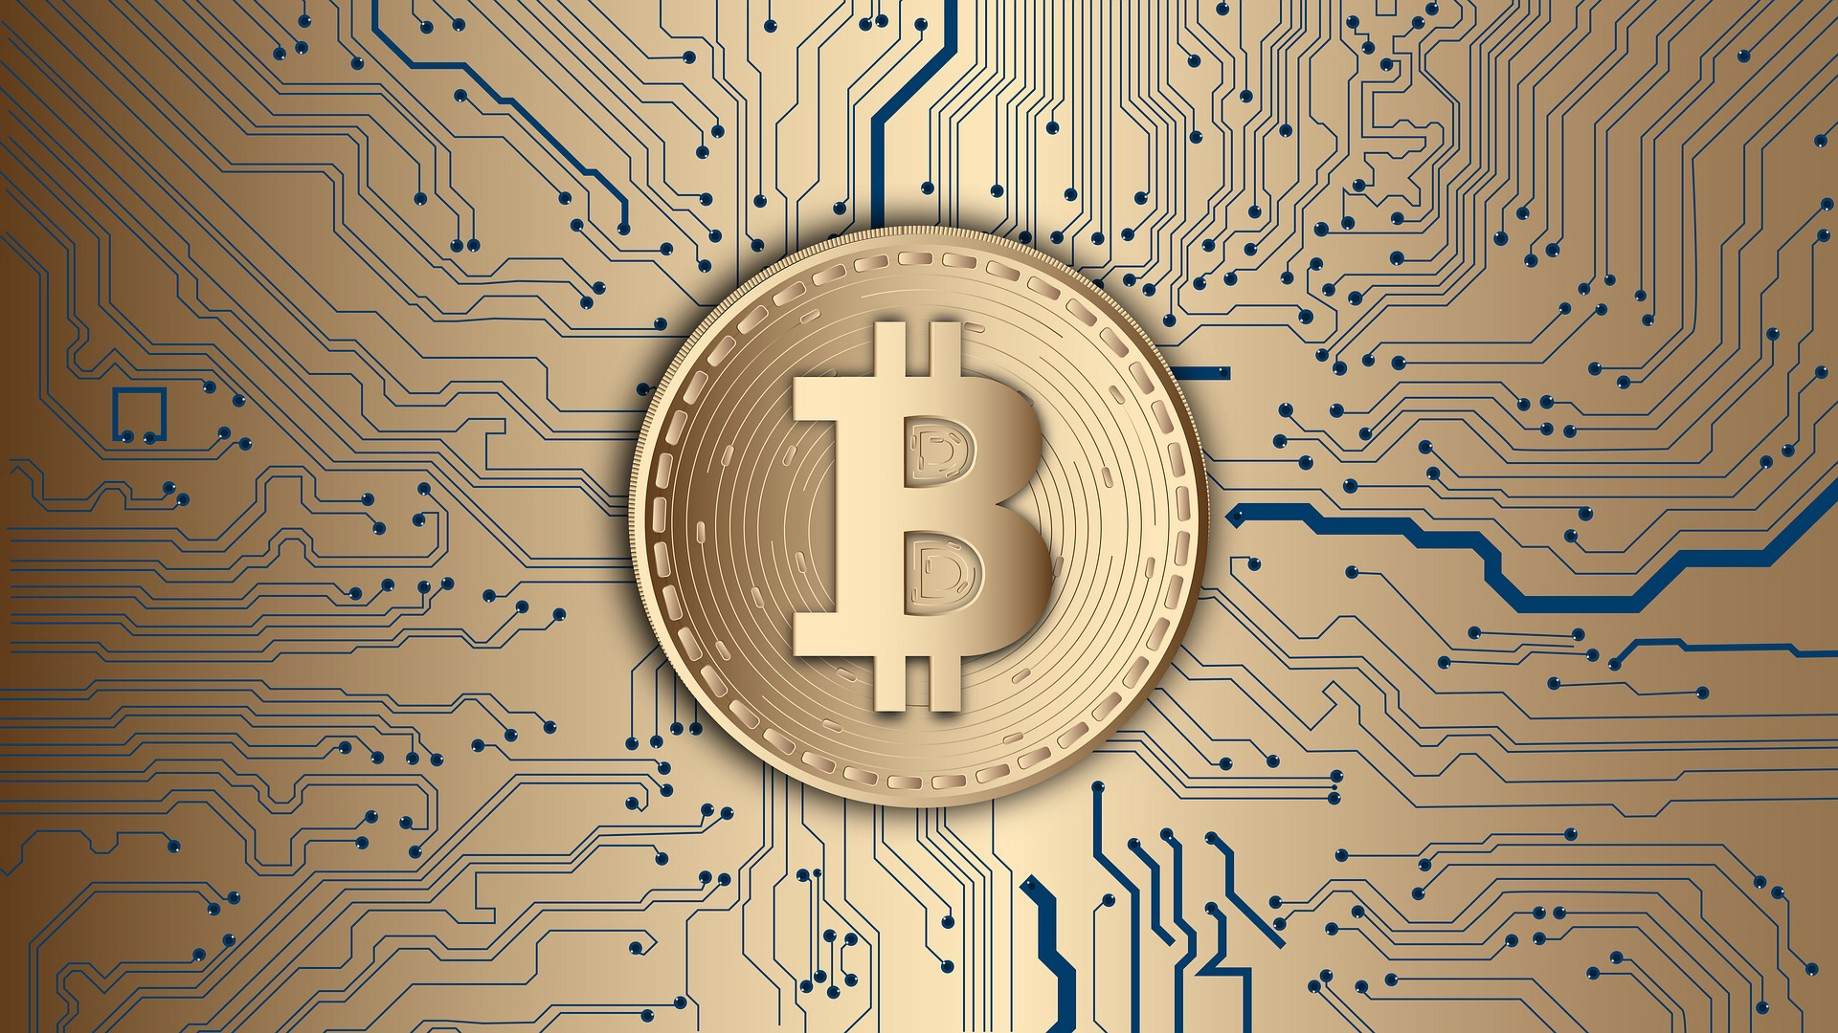 How to predict Bitcoin and Ethereum price with RNN-LSTM in Keras